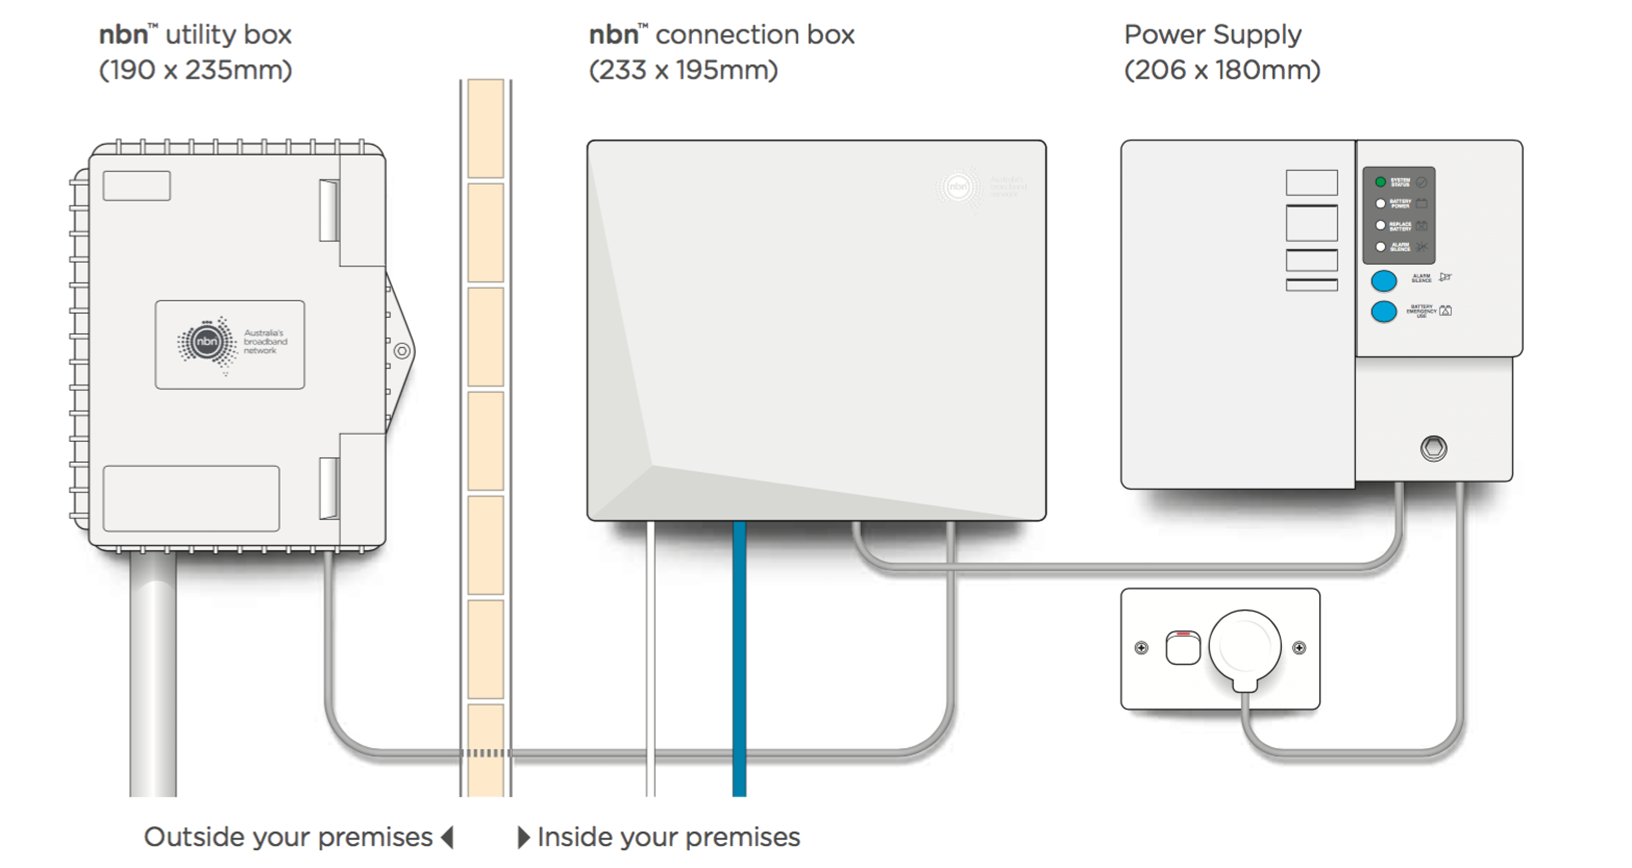 Nbn Fibre To The Premises Explained Fttp Australias Wiring House For Fiber Optics Refer Diagram Above Of Equipment That May Be Installed At Your Depending On Internal Or External Location